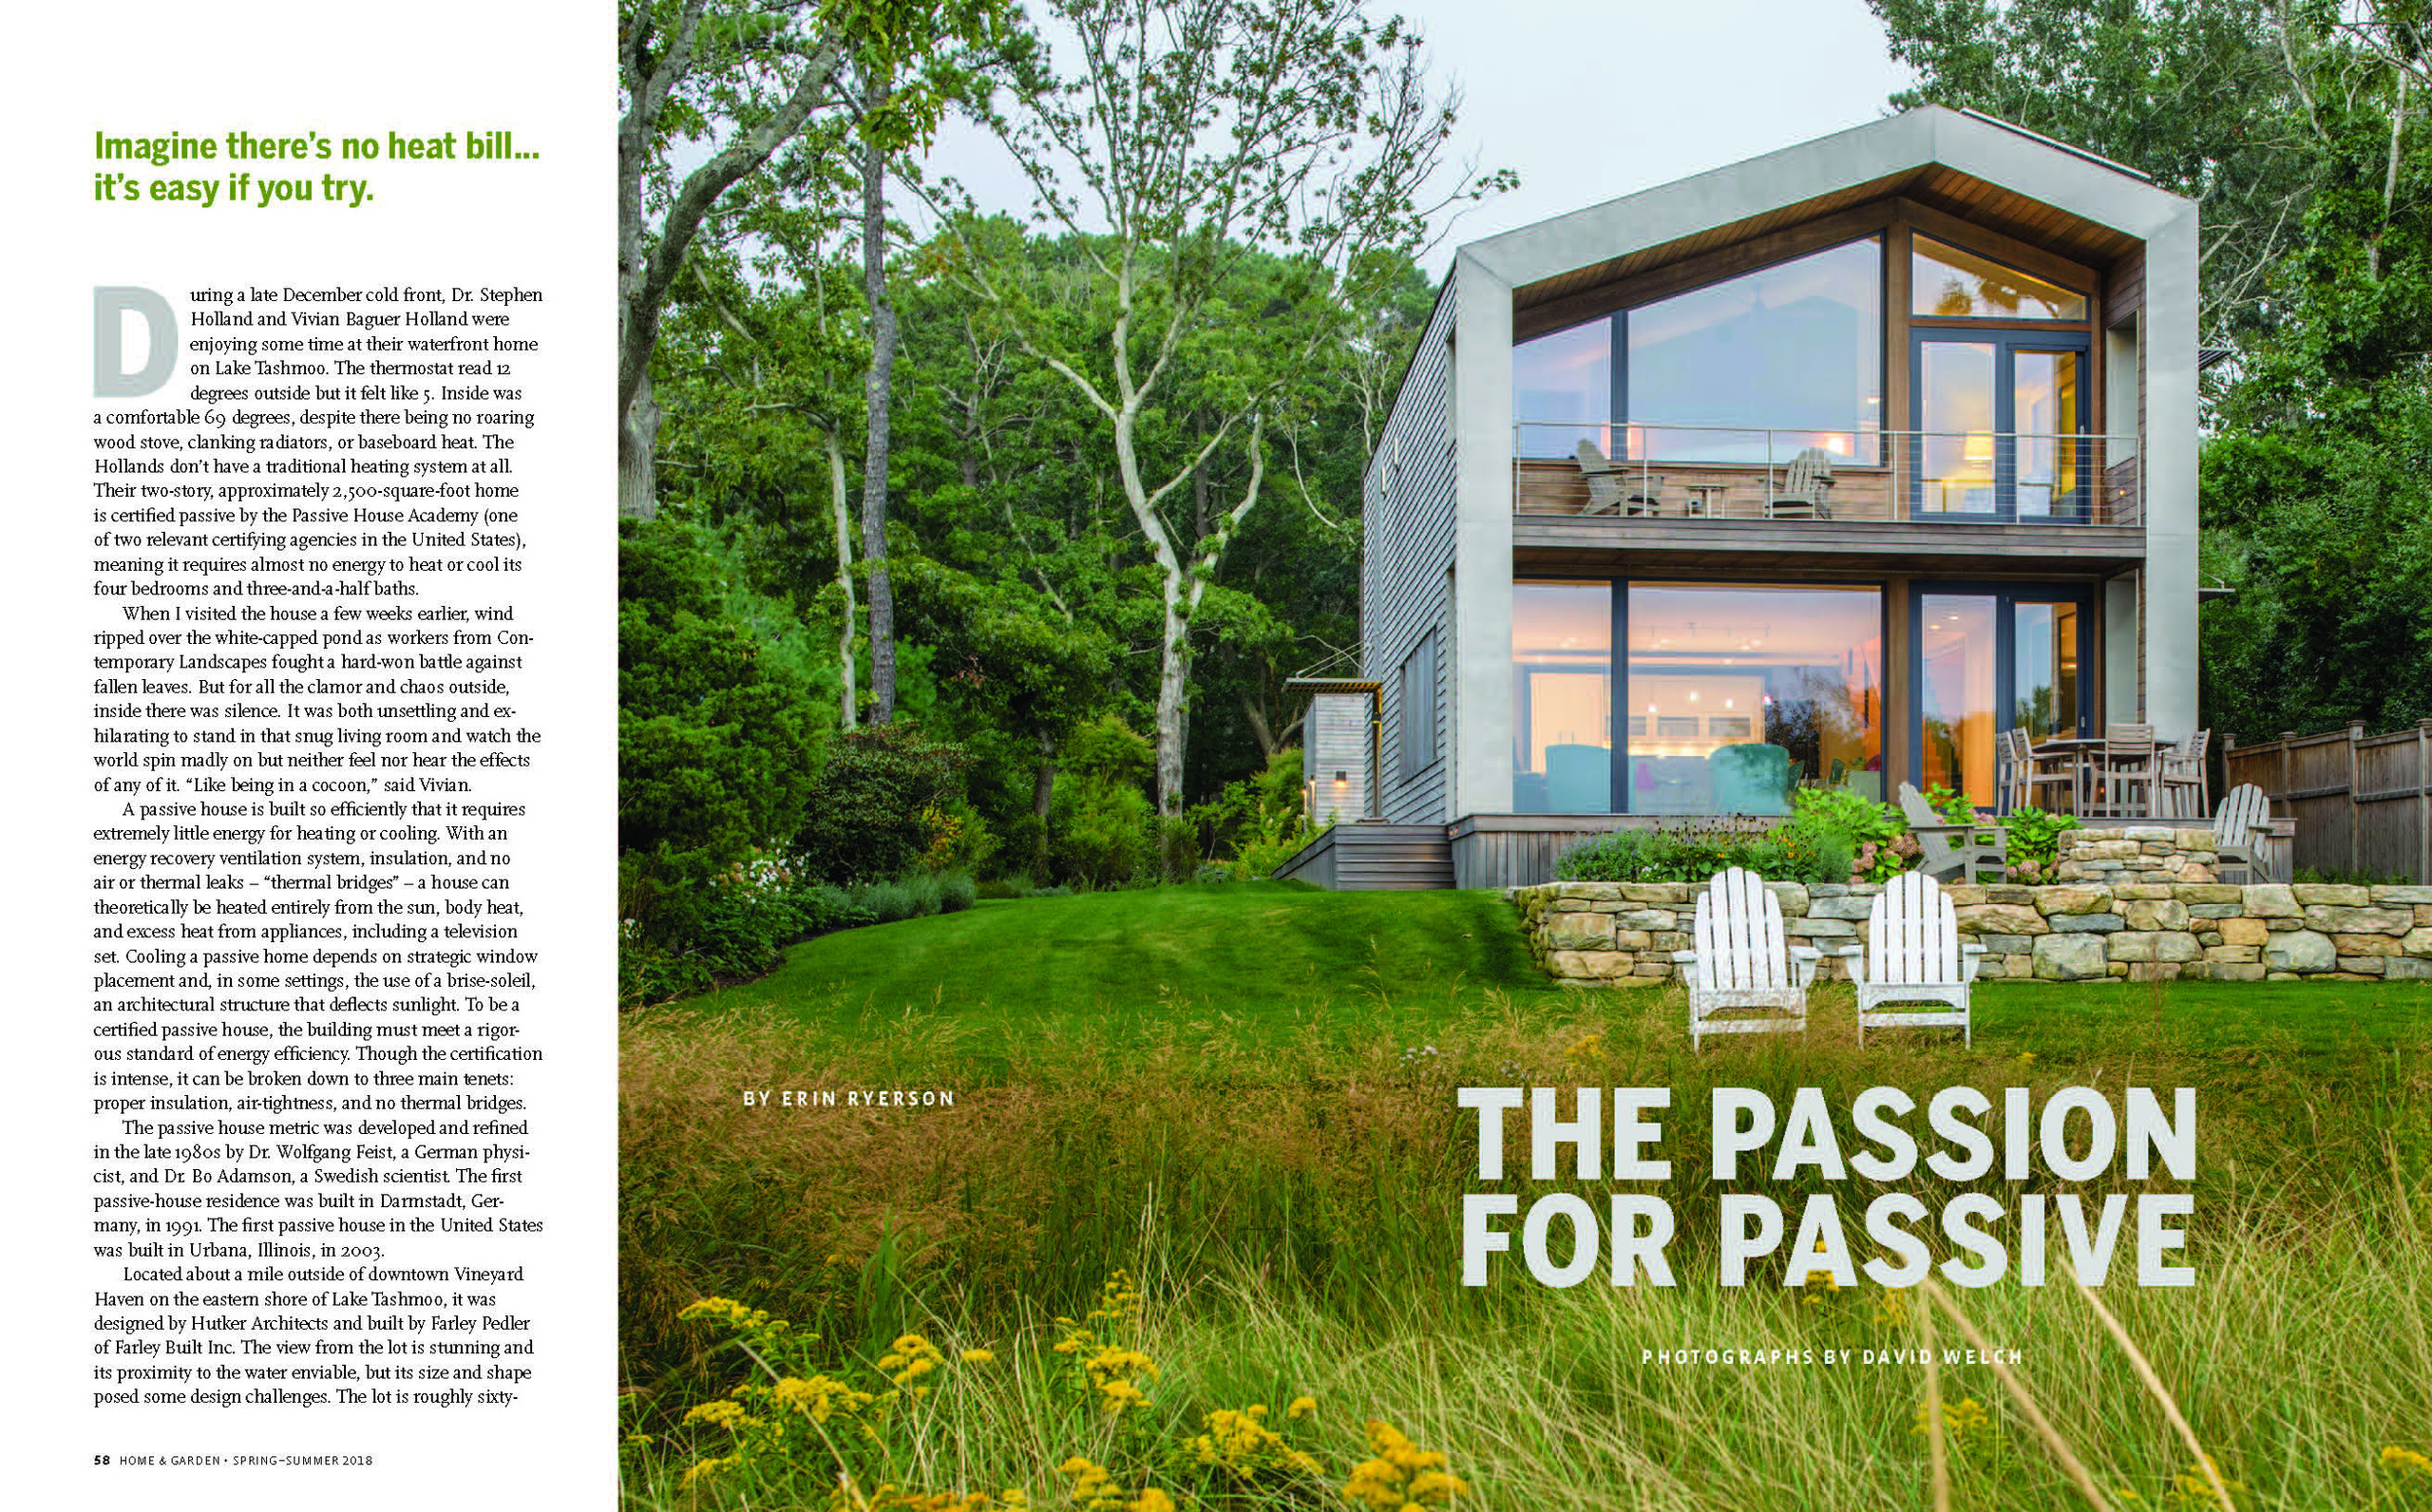 Martha's Vineyard Magazine article about a Hutker Architects Passive House photos by David Welch Photography